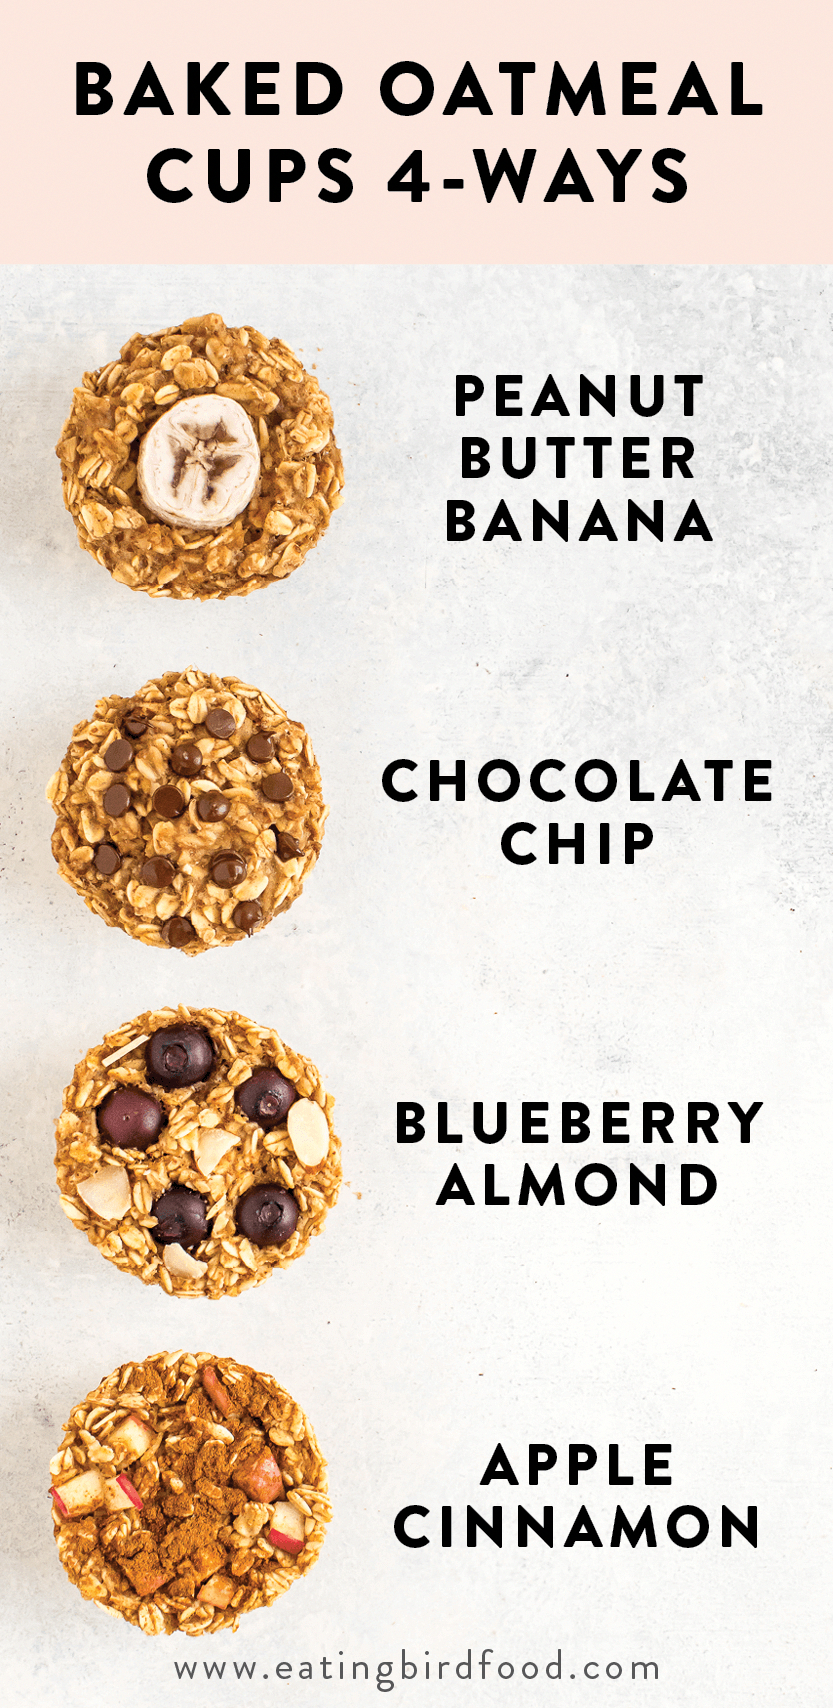 Keep these baked oatmeal cups in your fridge or freezer for an easy, healthy breakfast! There's four different flavor options so you'll never get bored. Vegan + gluten-free.